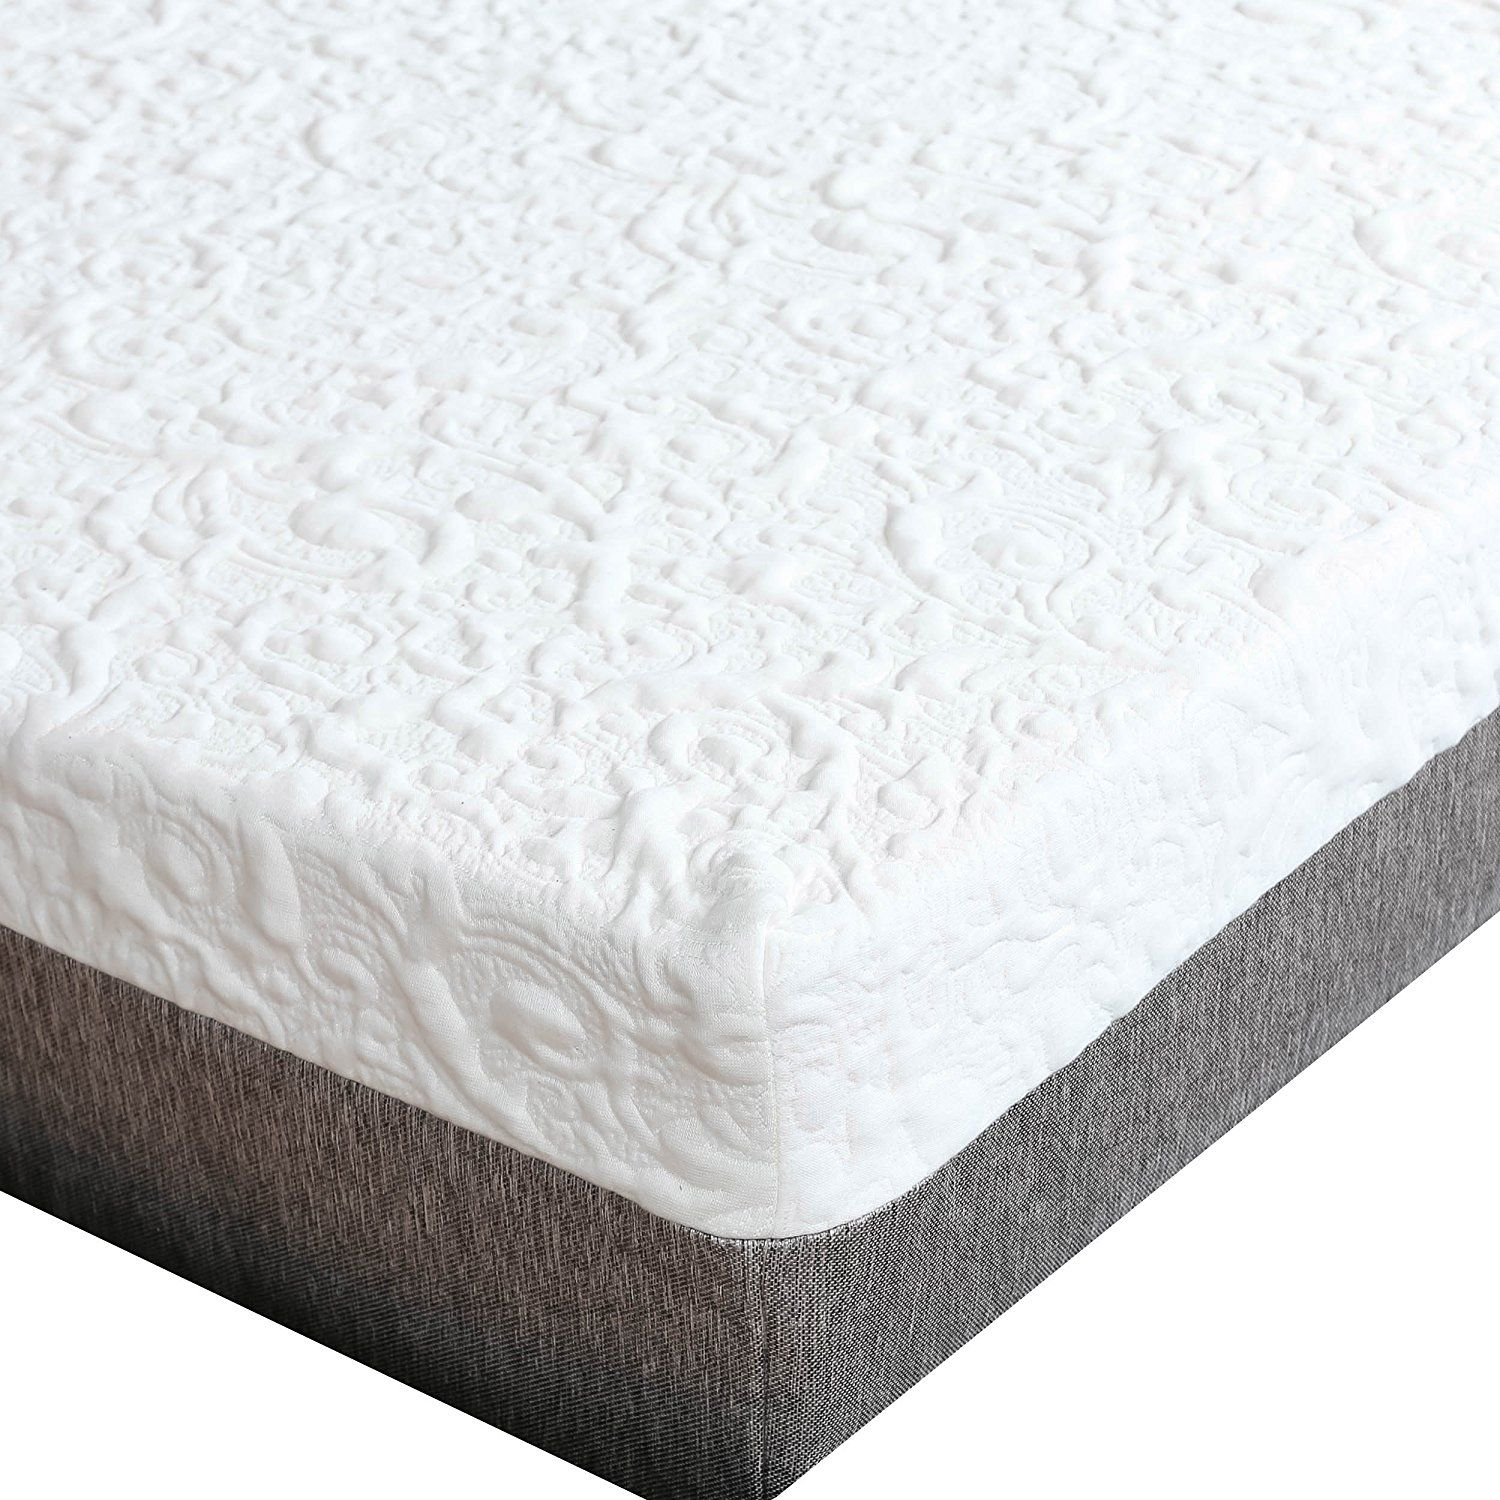 Michael Anthony Gel Memory Foam Rv 10 Inch Mattress Short Queen Don T Get Left Behind See This Great Gel Memory Foam Gel Memory Foam Mattress Mattress